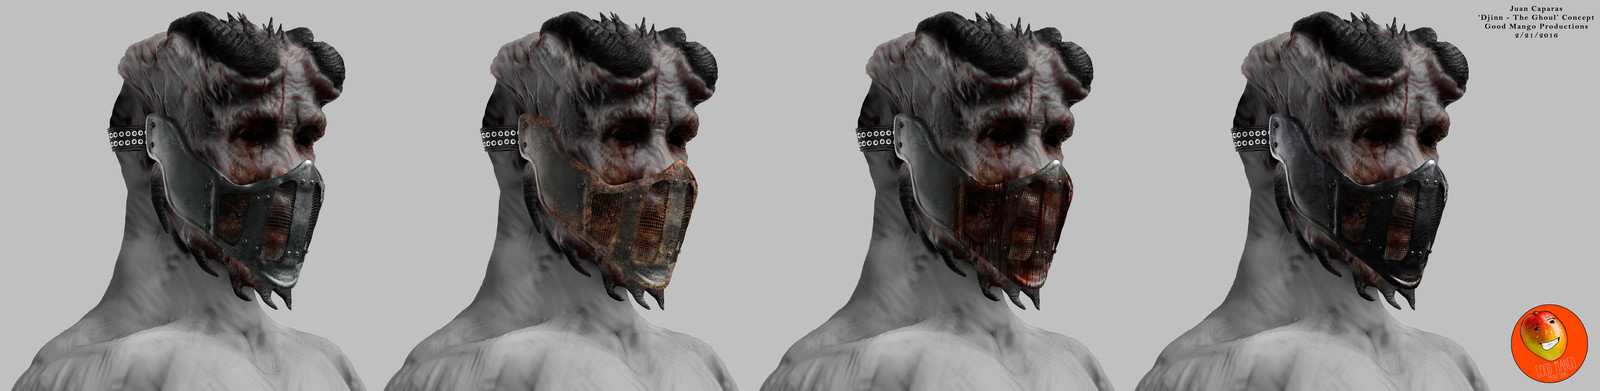 The Ghoul Concept Art | Good Mango Productions